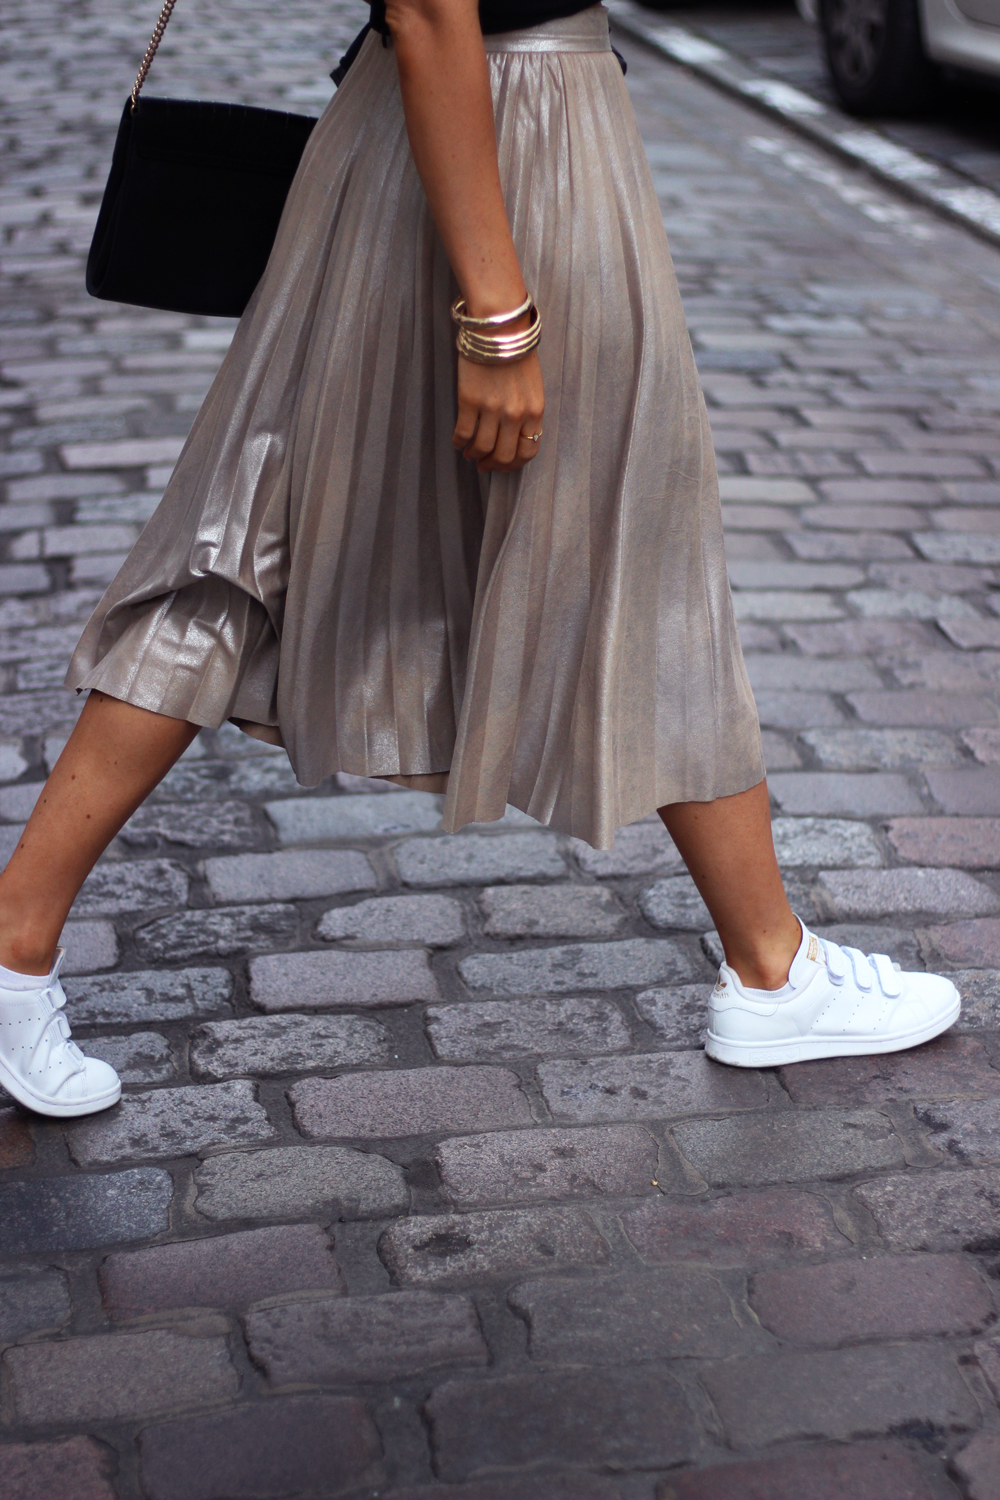 Jupe metalisee Zara metallic skirt blog Jess Me Up Lille